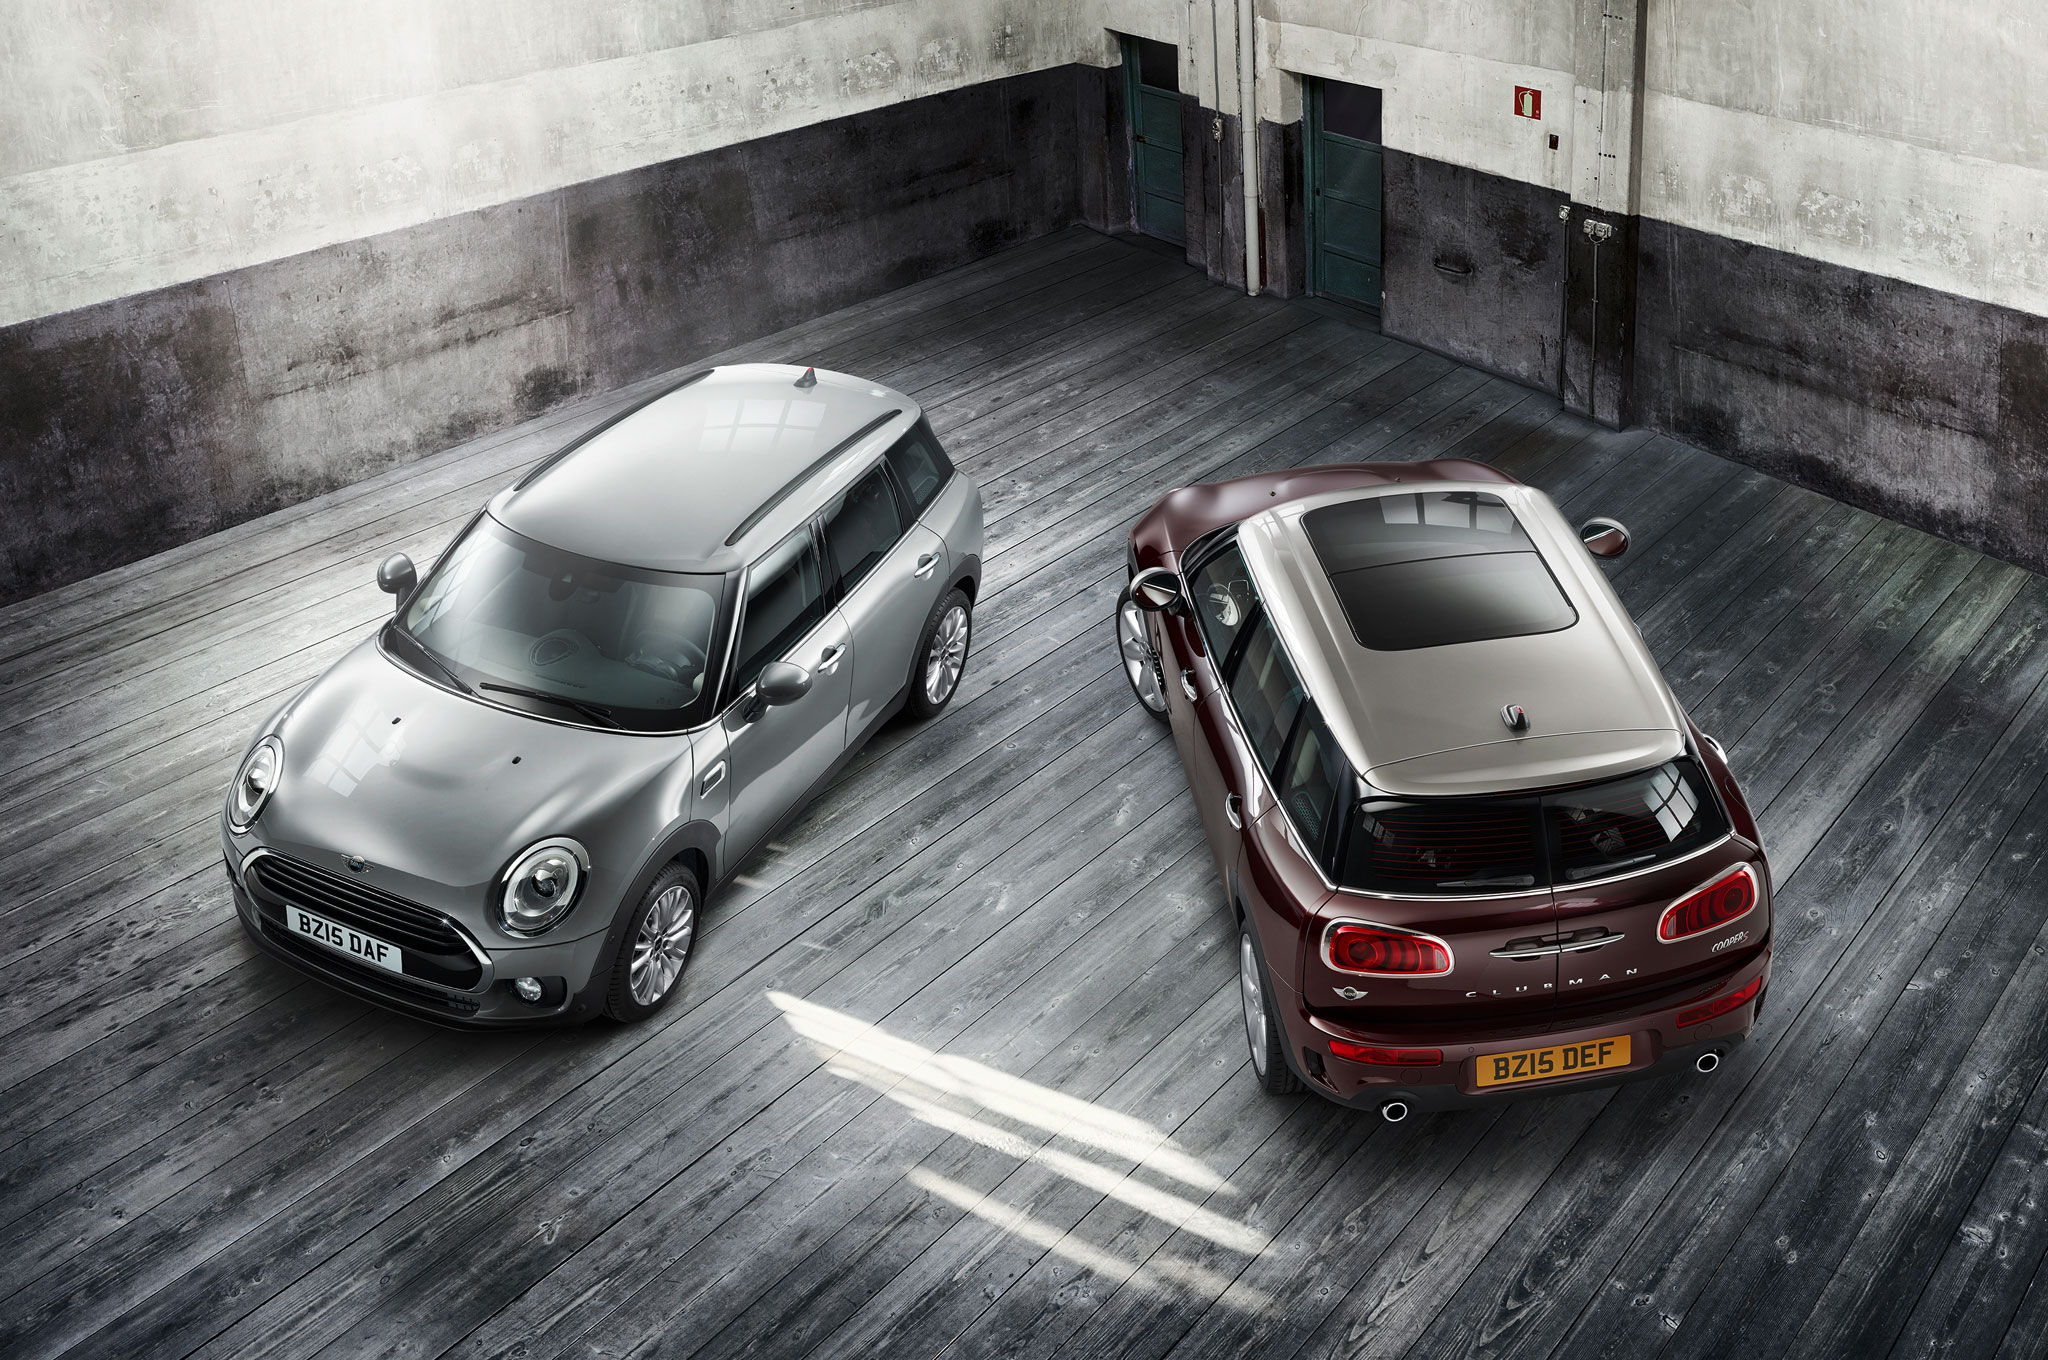 2016 Mini Clubman Front And Rear View From Above1